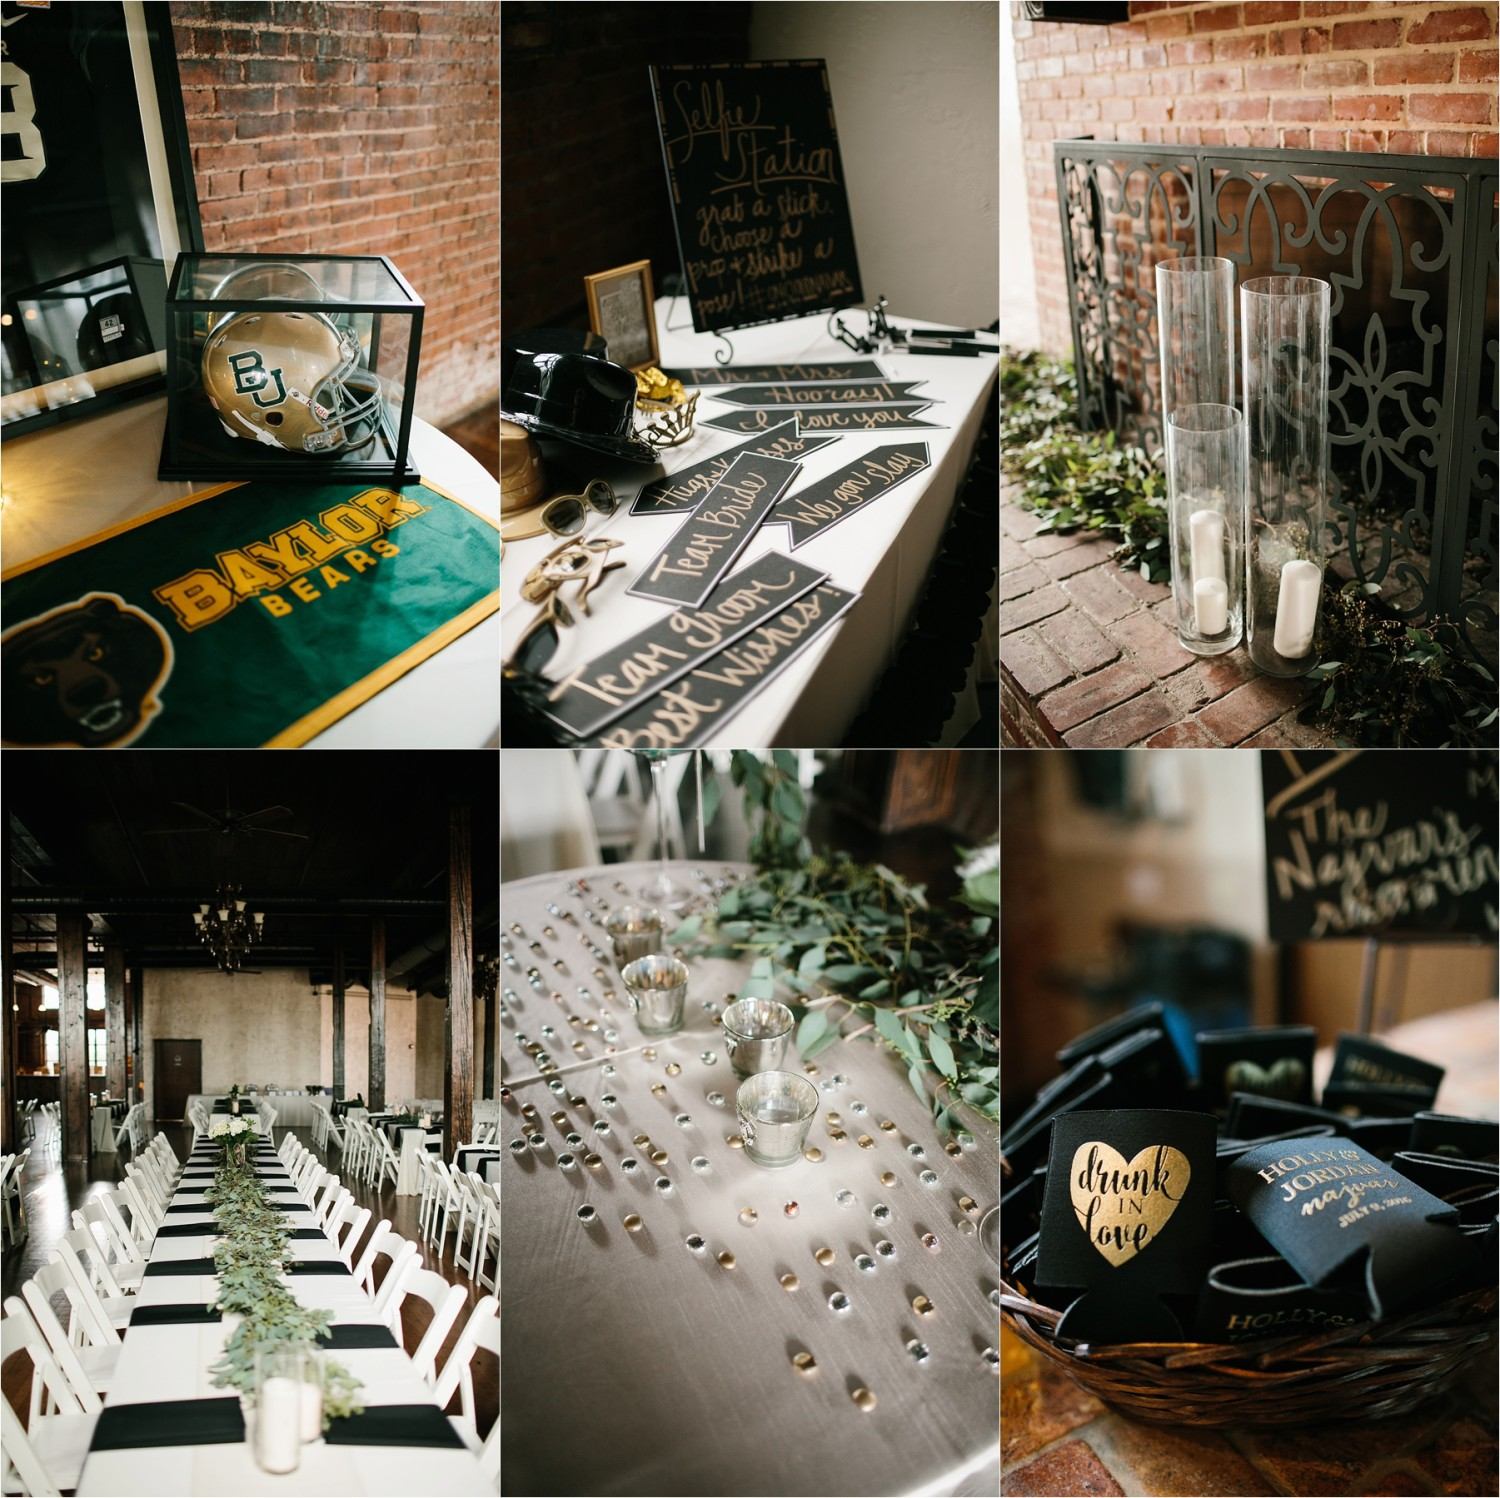 Holly + Jordan __ a black, gold, and greenery organic wedding at The Phoenix Ballroom in Waco, TX by North Texas Wedding Photographer Rachel Meagan Photography __ 13